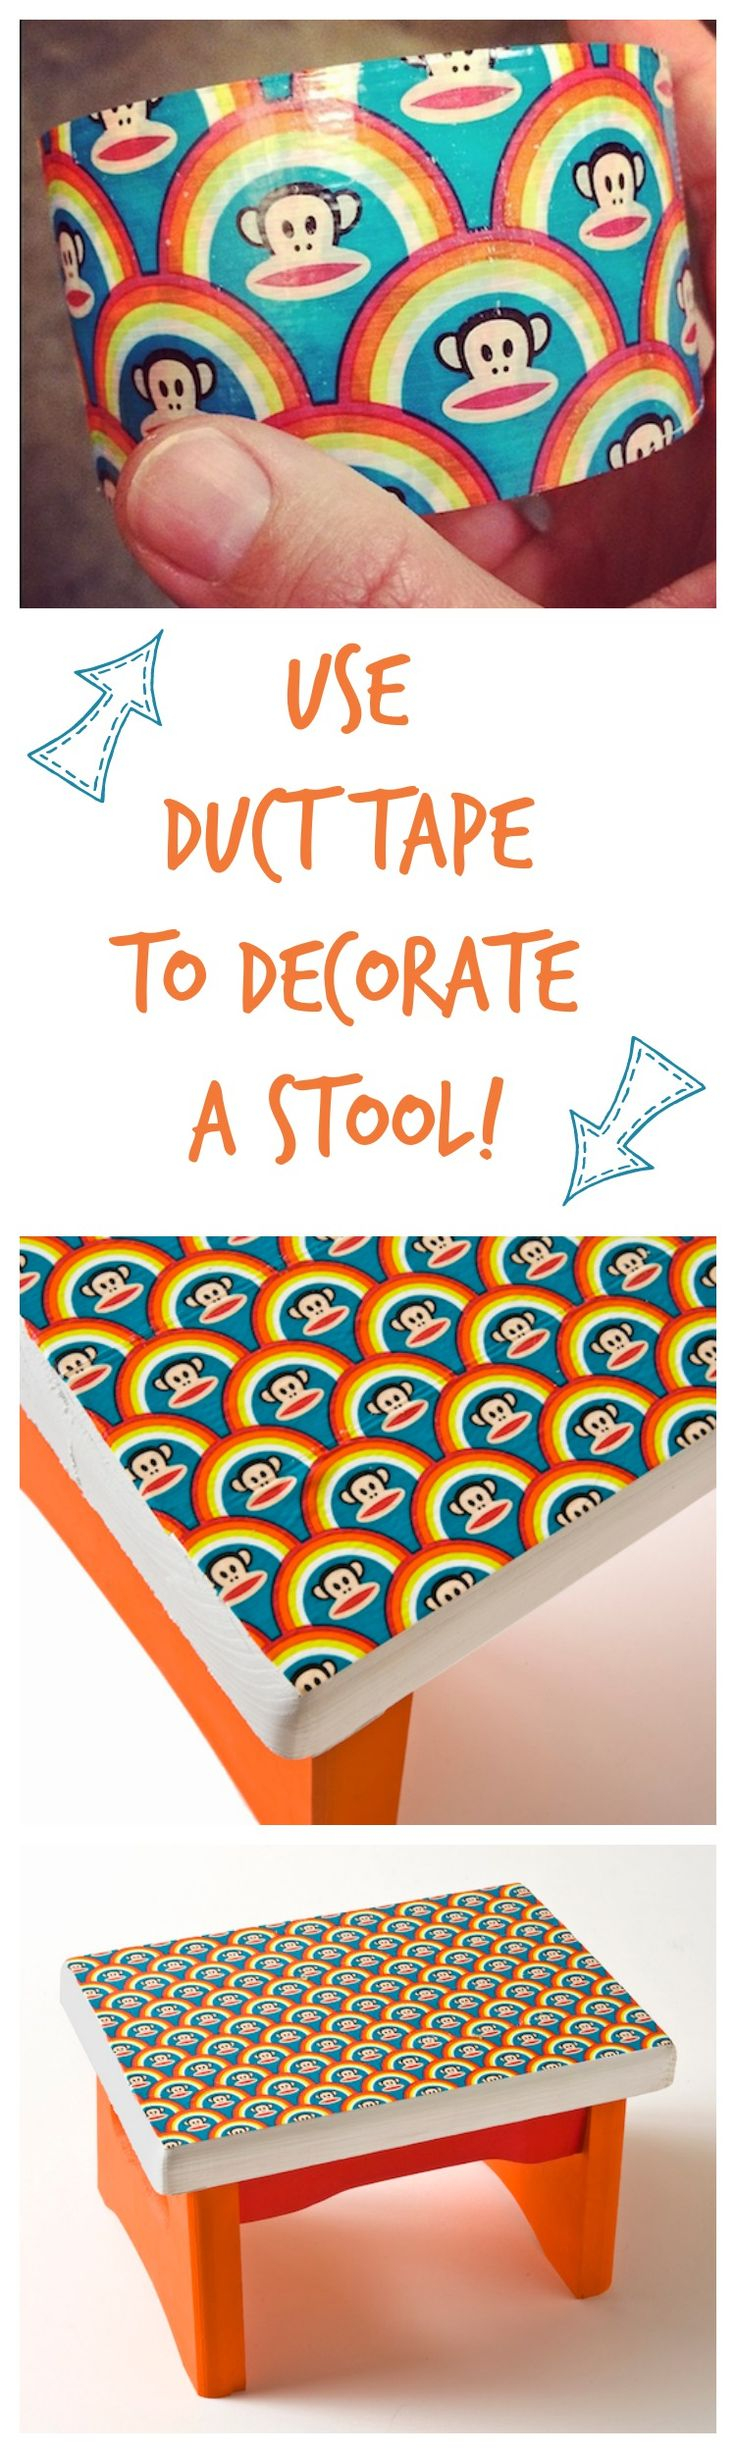 Use duct tape to decorate a stool!